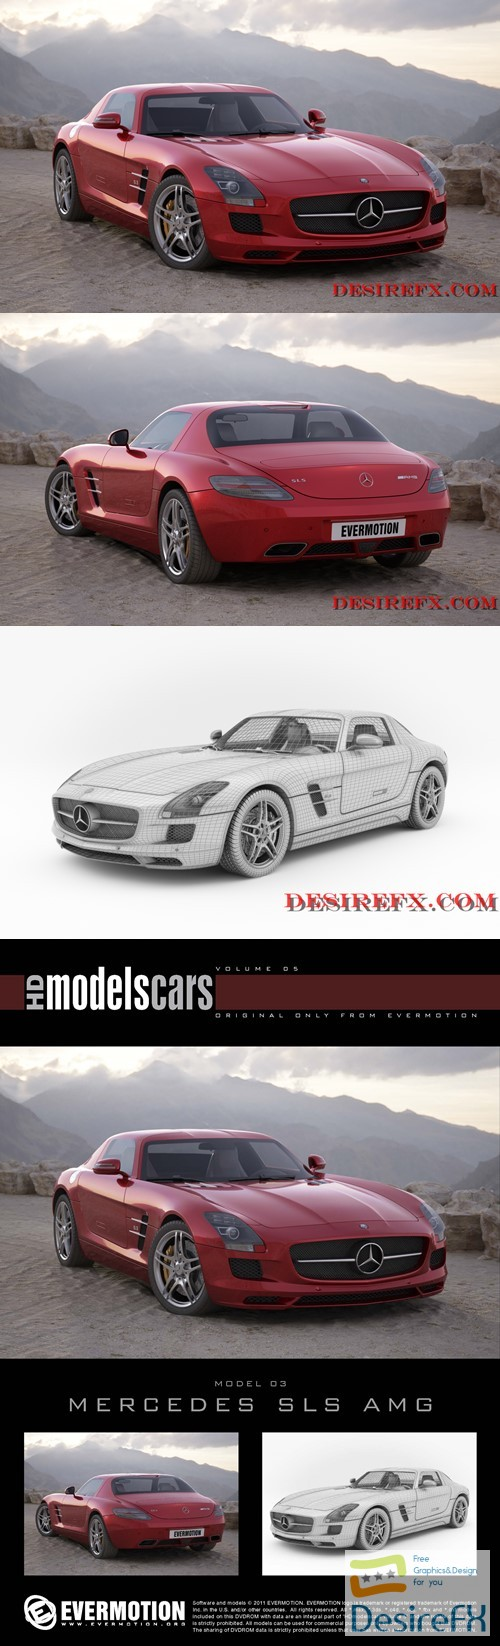 3d-models - Mercedes SLS AMG EVERMOTION 3D Model